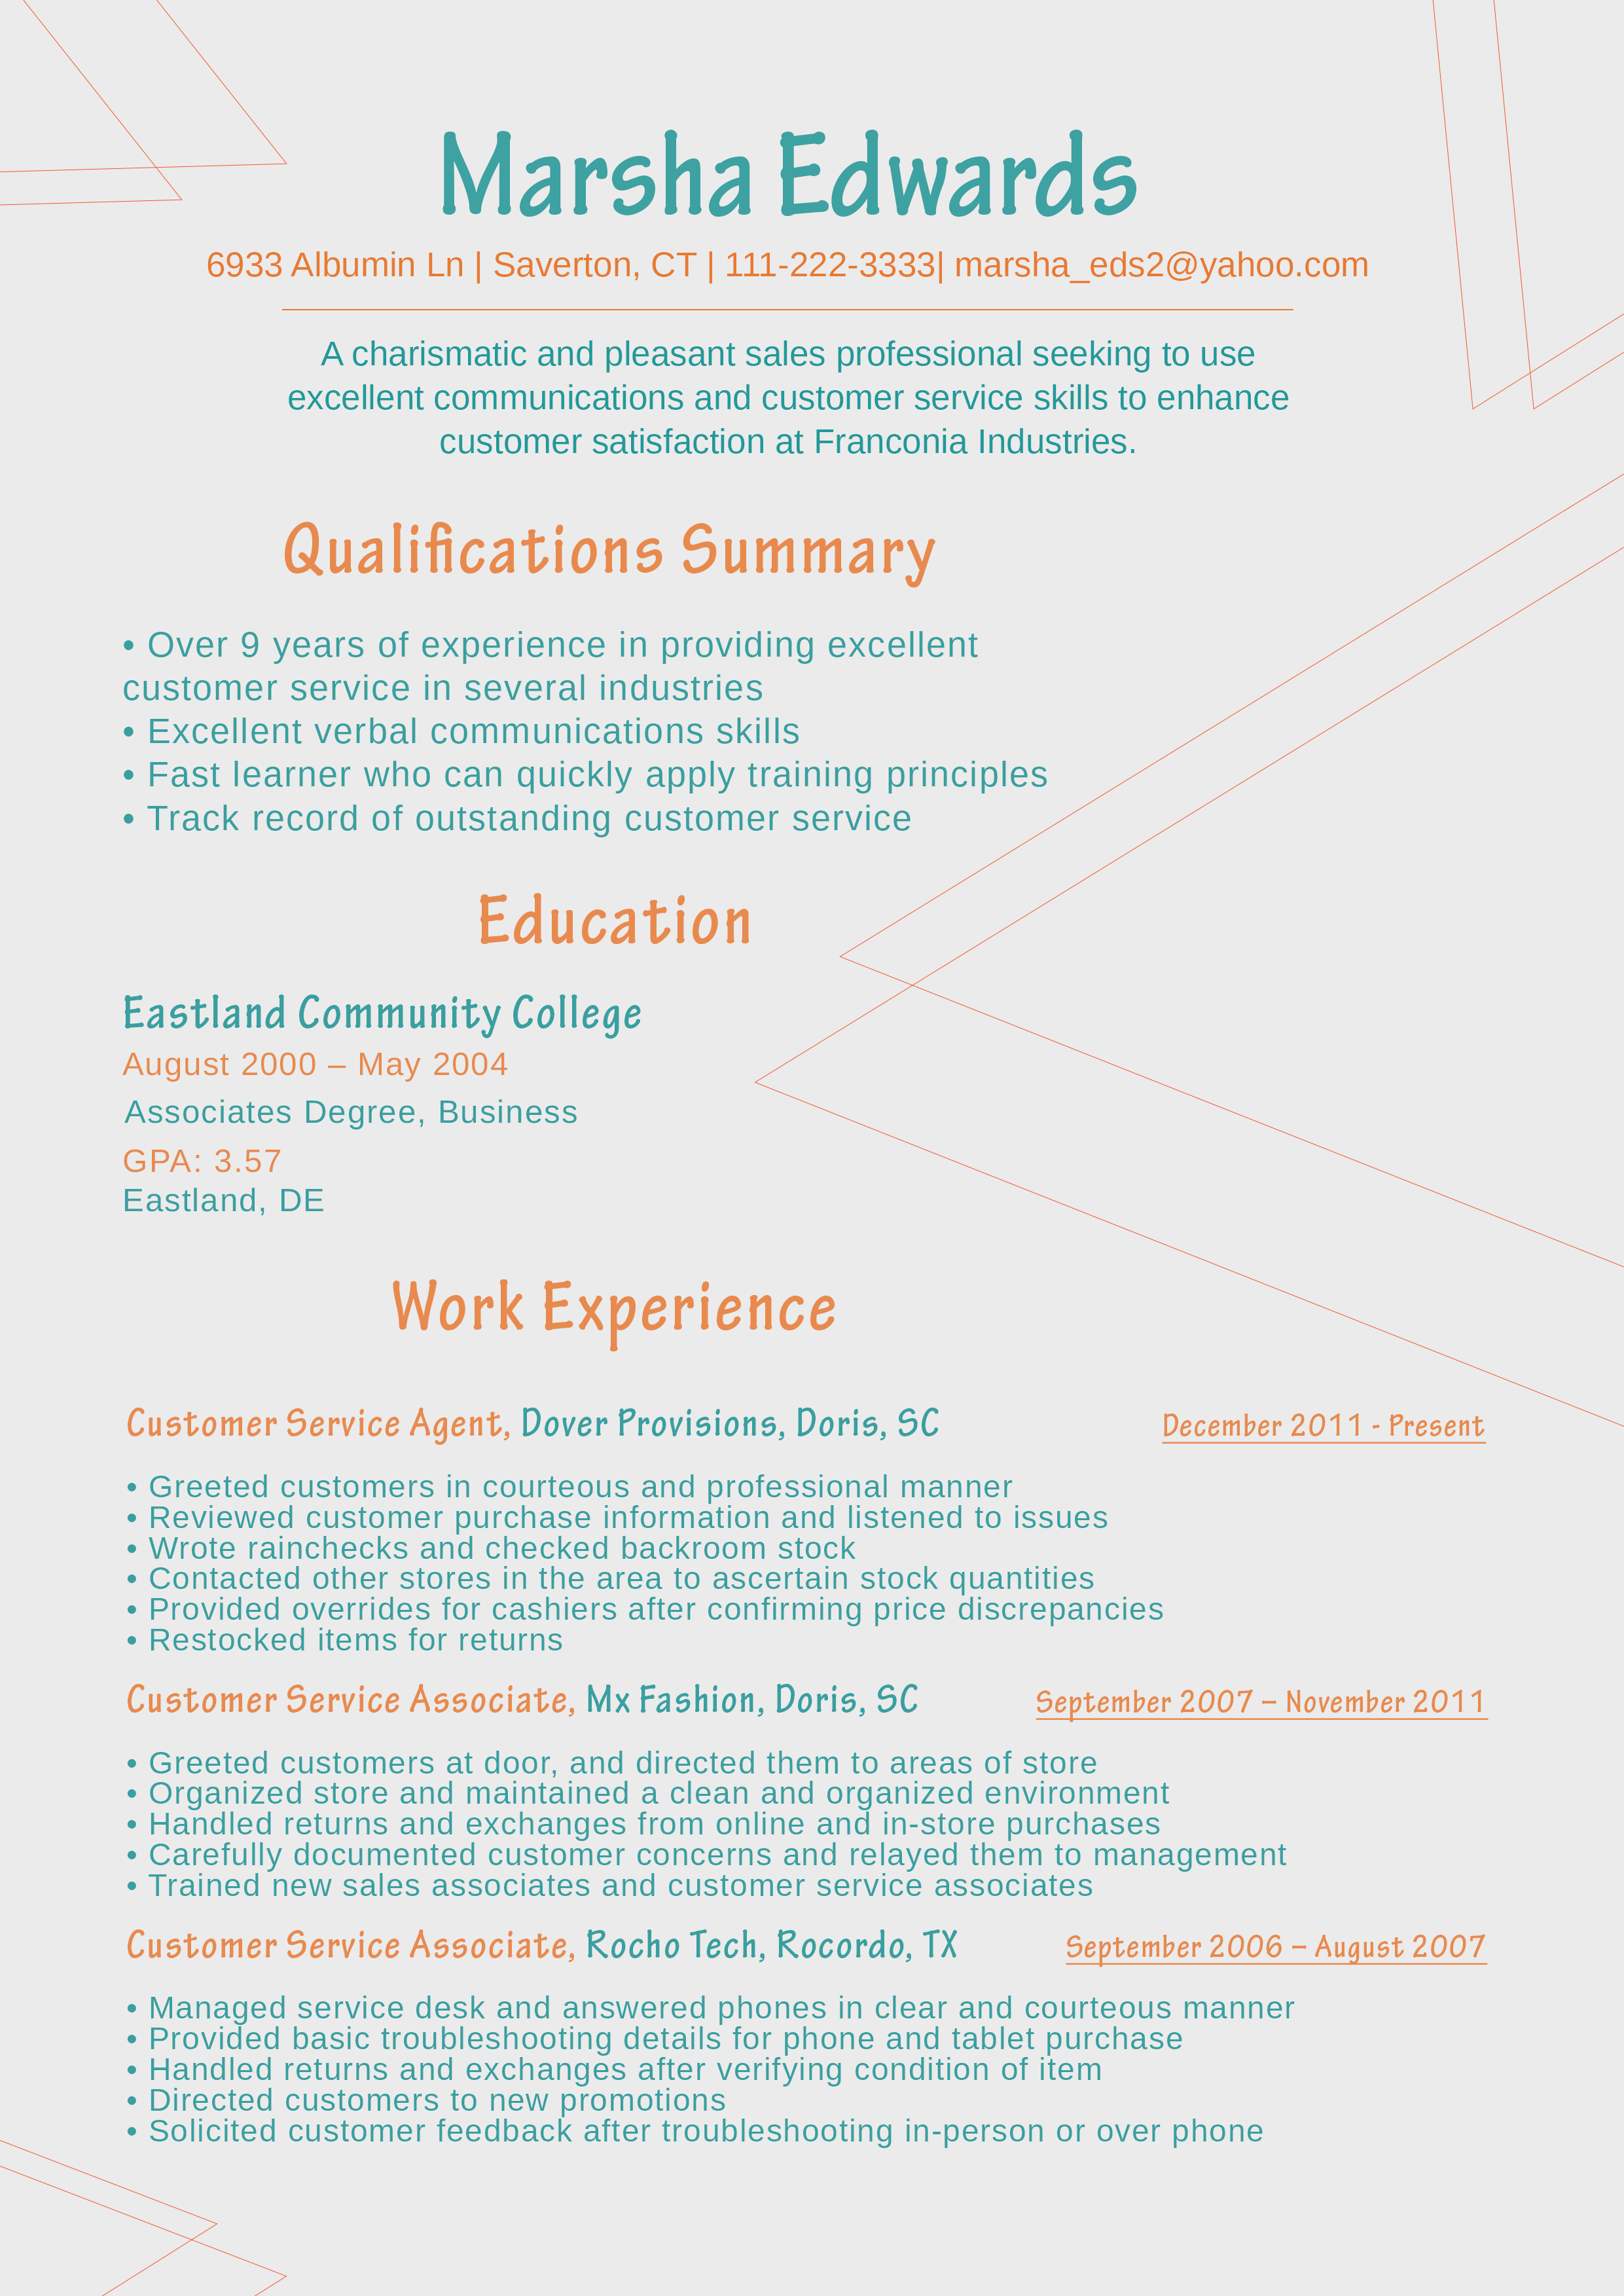 Newest Resume Format Sample 2018 Job Search New Resume Format